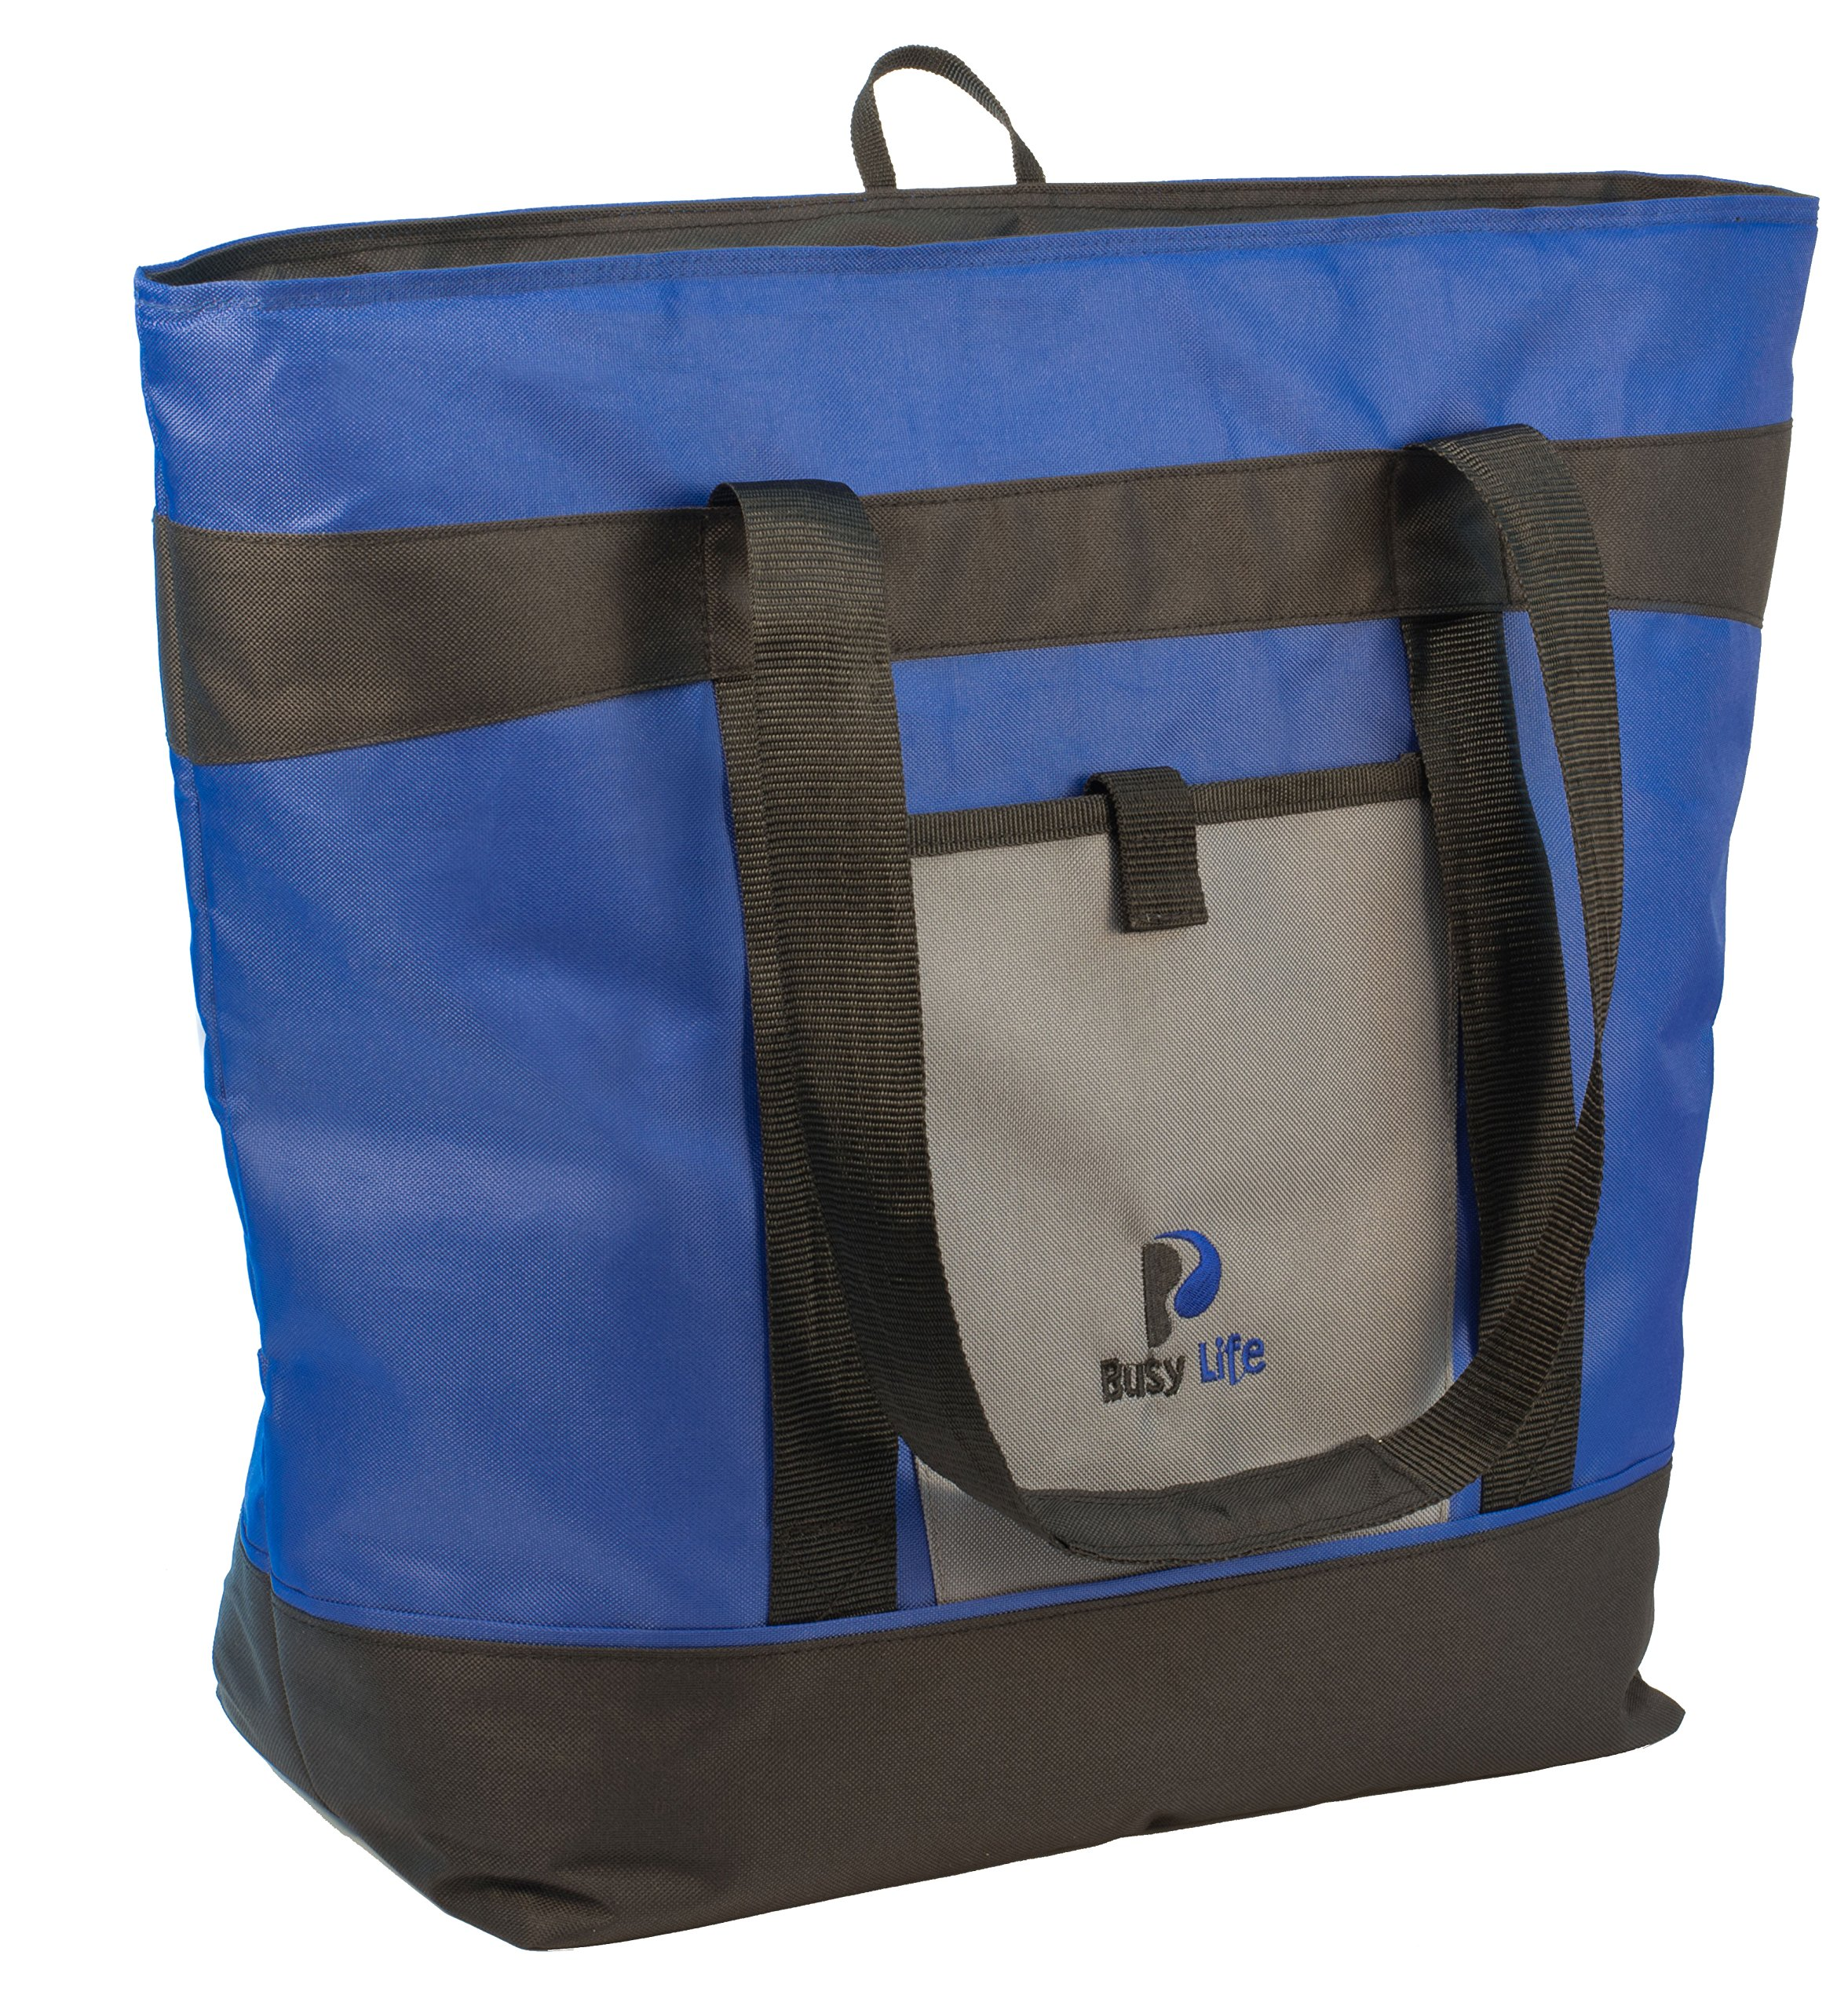 Insulated Cooler Bag Gift Pack. Busy Life Insulated Grocery Tote Perfect for Hot and Cold Food. Large 10 Gallon Capacity - Never Bring Home Melted Ice Cream Again. (4 Units) by Busy Life (Image #8)